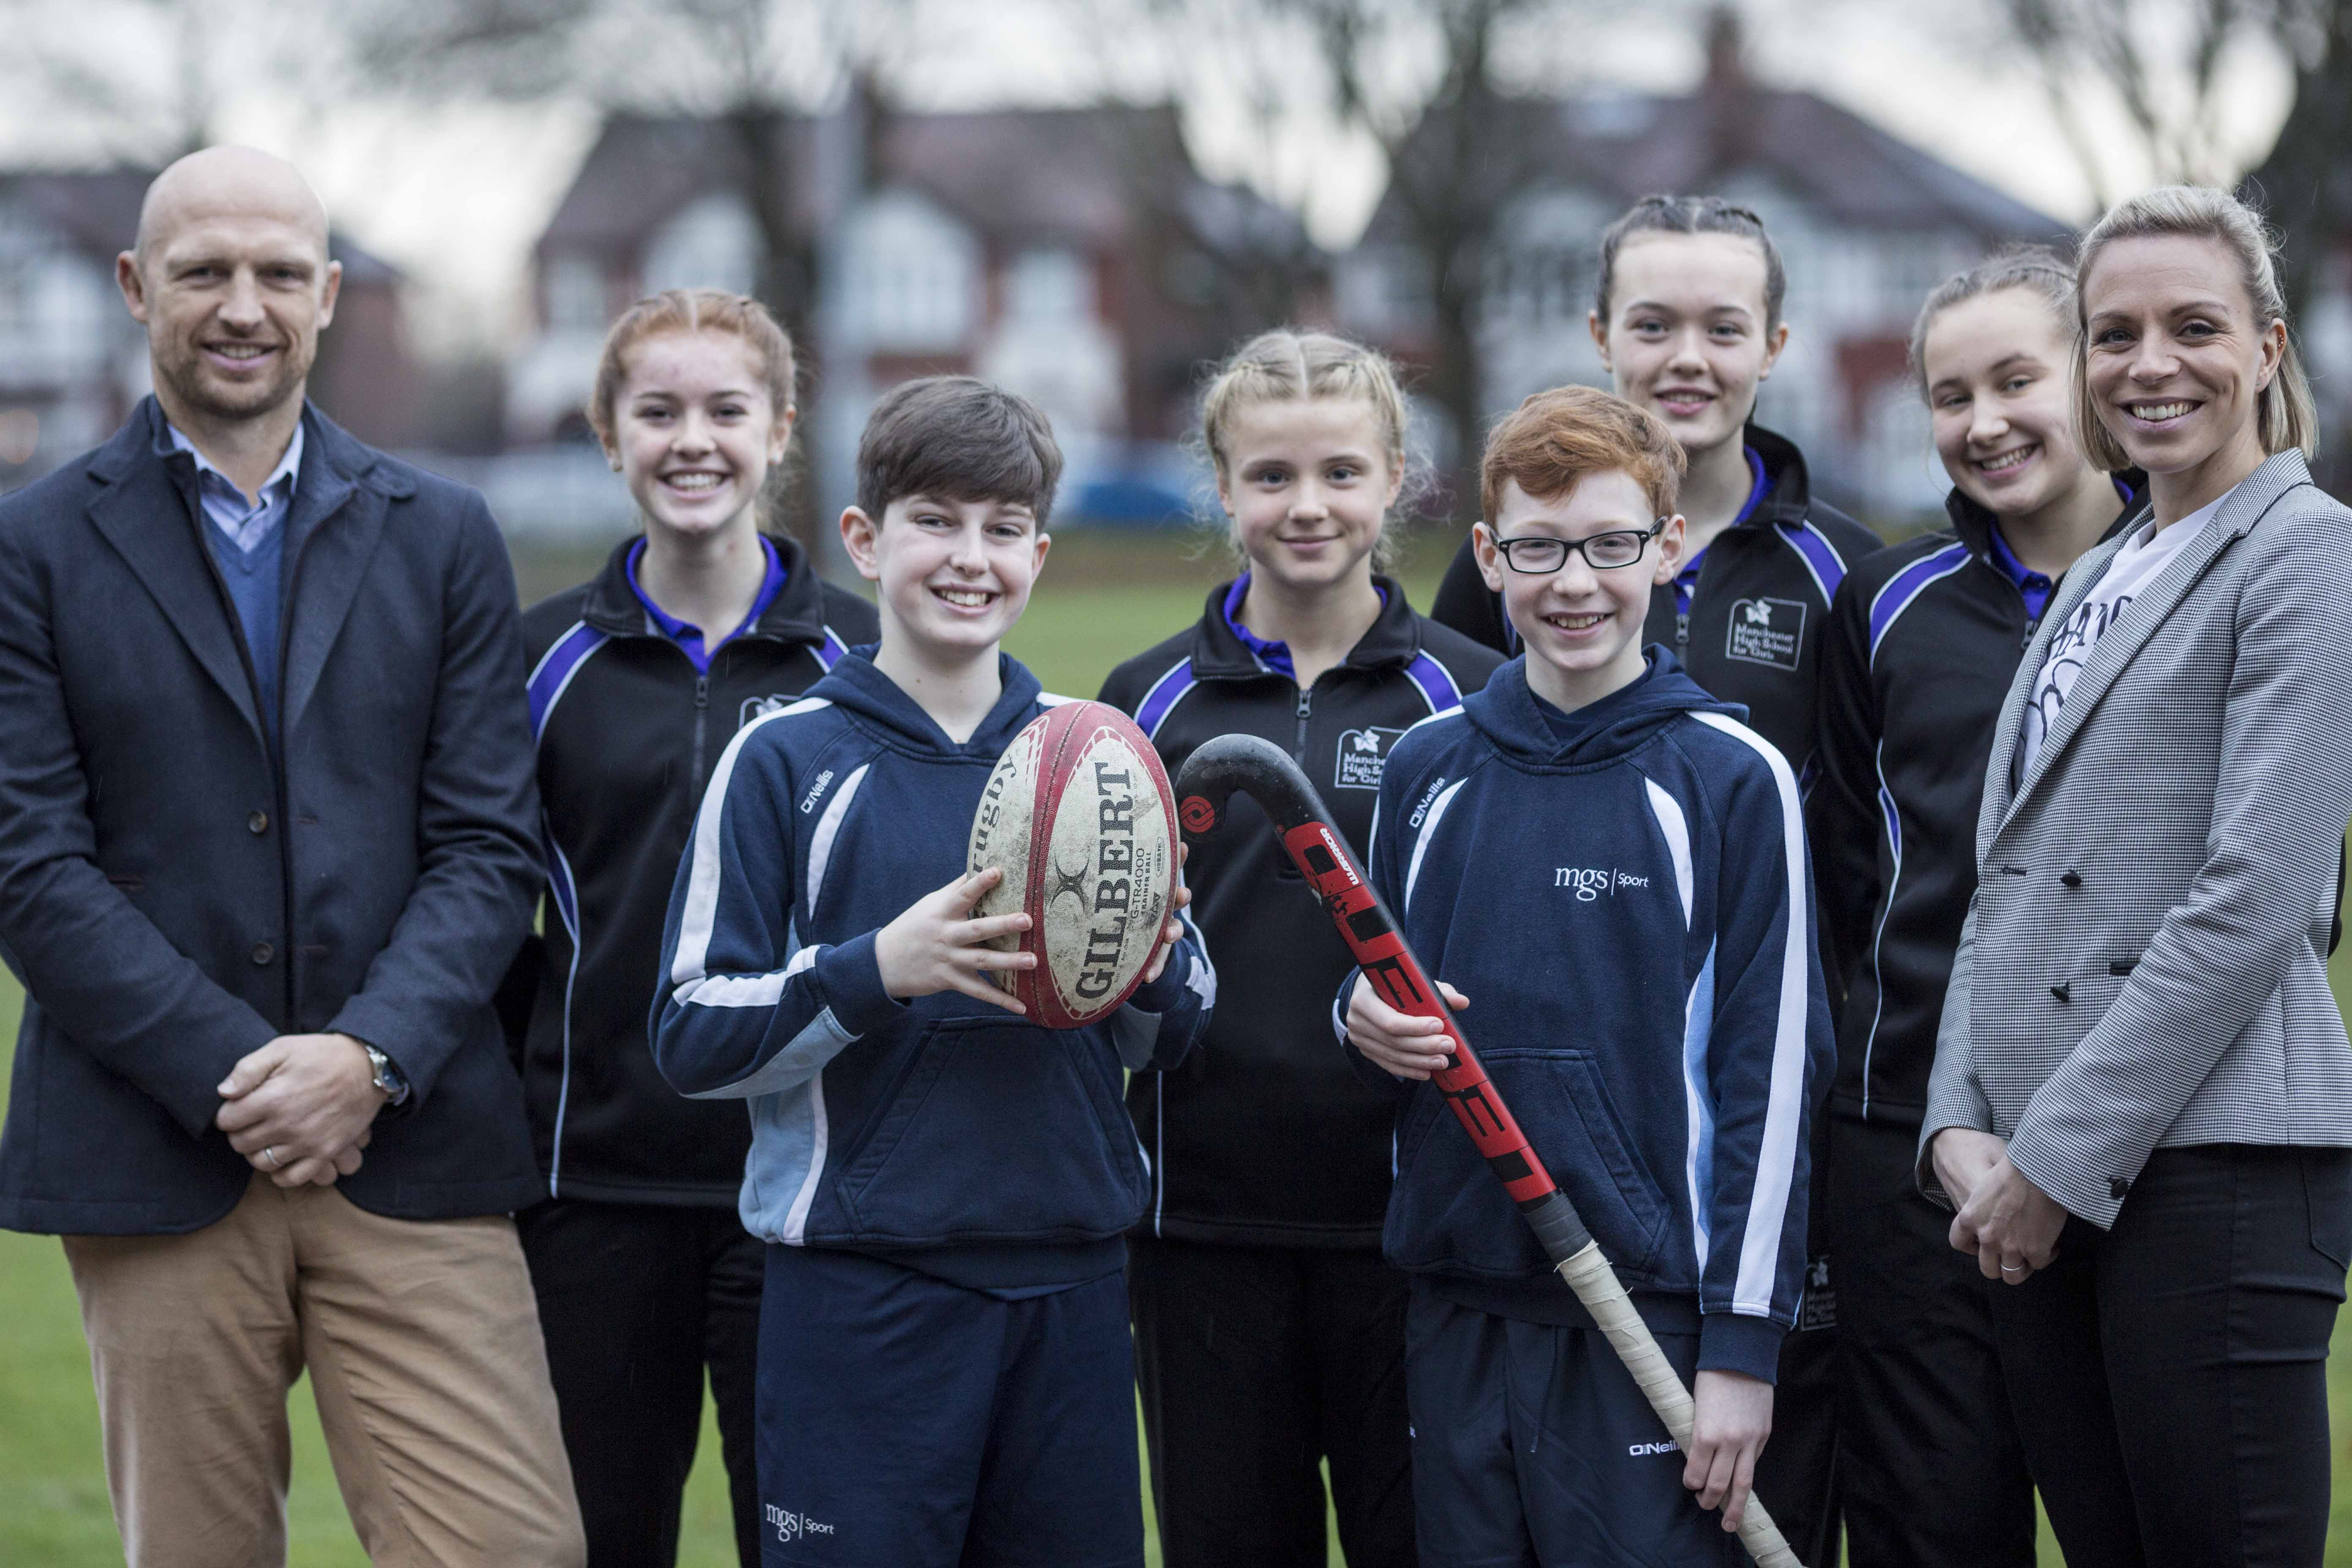 Picture by Chris Bull for Manchester Grammar School.   L-R Matt Dawson , former England Rubgy Union player ,Lottie Kielty , 15 ,  Finn Perls , 12, Kizzy Ward , 13 , Henry Murray , 12 , Ella Hampson ,13 , Livi Baker ,13 and Kate Richardson-Walsh, GB Olympic gold medal hockey captain.  Students from Manchester High School for Girls (MSHG) and The Manchester Grammar School (MGS) learned that young people are among the most at-risk of contracting meningitis as two top UK sports personalities visited the schools today, Monday 15th January. Former England rugby player and BBC sports commentator, Matt Dawson, and GB Olympic gold medal hockey captain Kate Richardson-Walsh, were in Manchester to raise awareness of the devastating illness as part of pharmaceutical and healthcare company GSKÕs Tackle Meningitis Campaign.   Stefan Jarmolowicz Director of Communications The Manchester Grammar School 0161 224 7201 ext 255 s.jarmolowicz@mgs.org   www.chrisbullphotographer.com